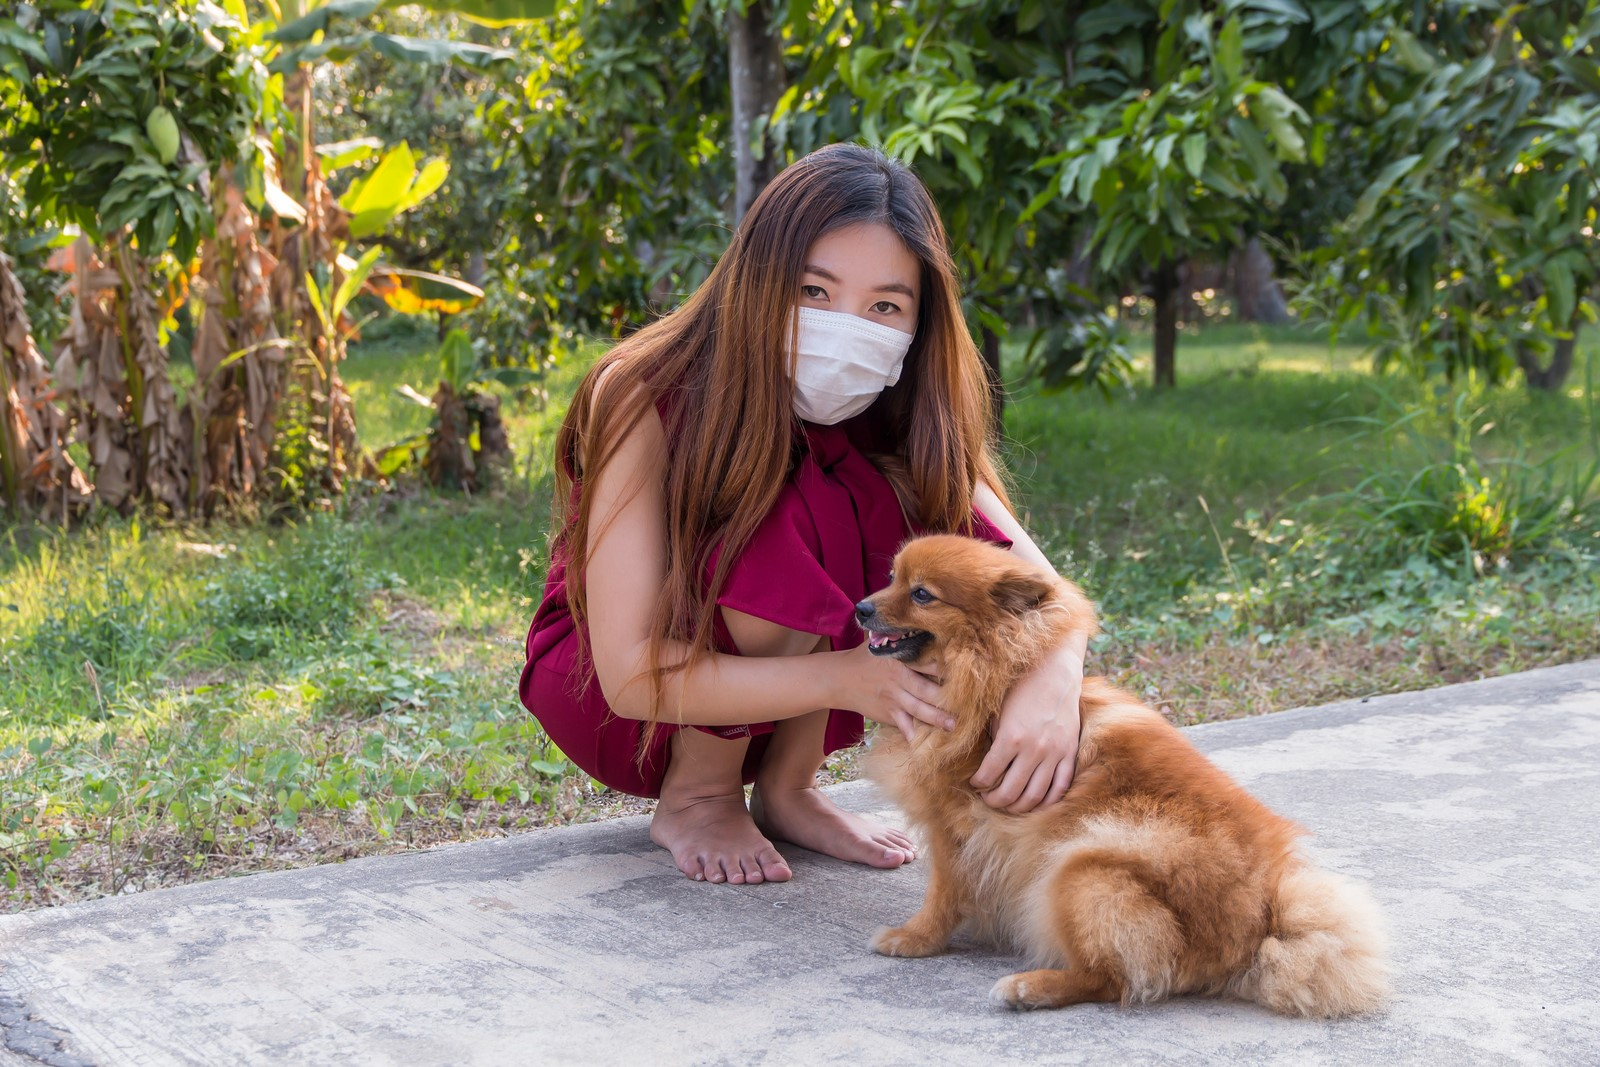 Pet Allergy-Induced Asthma: Causes, Symptoms & Precautions